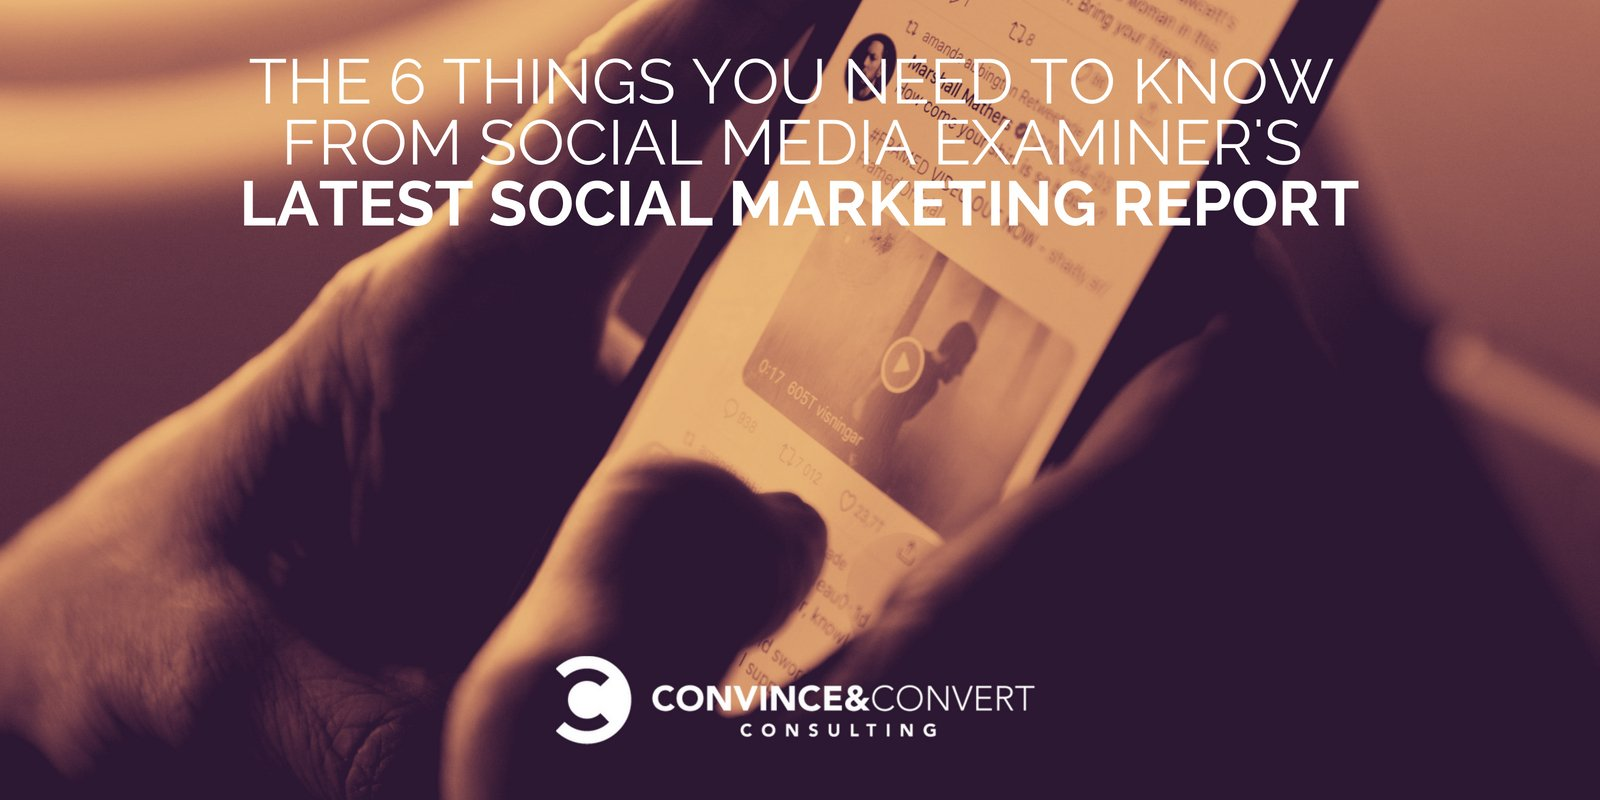 The 6 Things You Need to Know from Social Media Examiners Latest Social Marketing Report